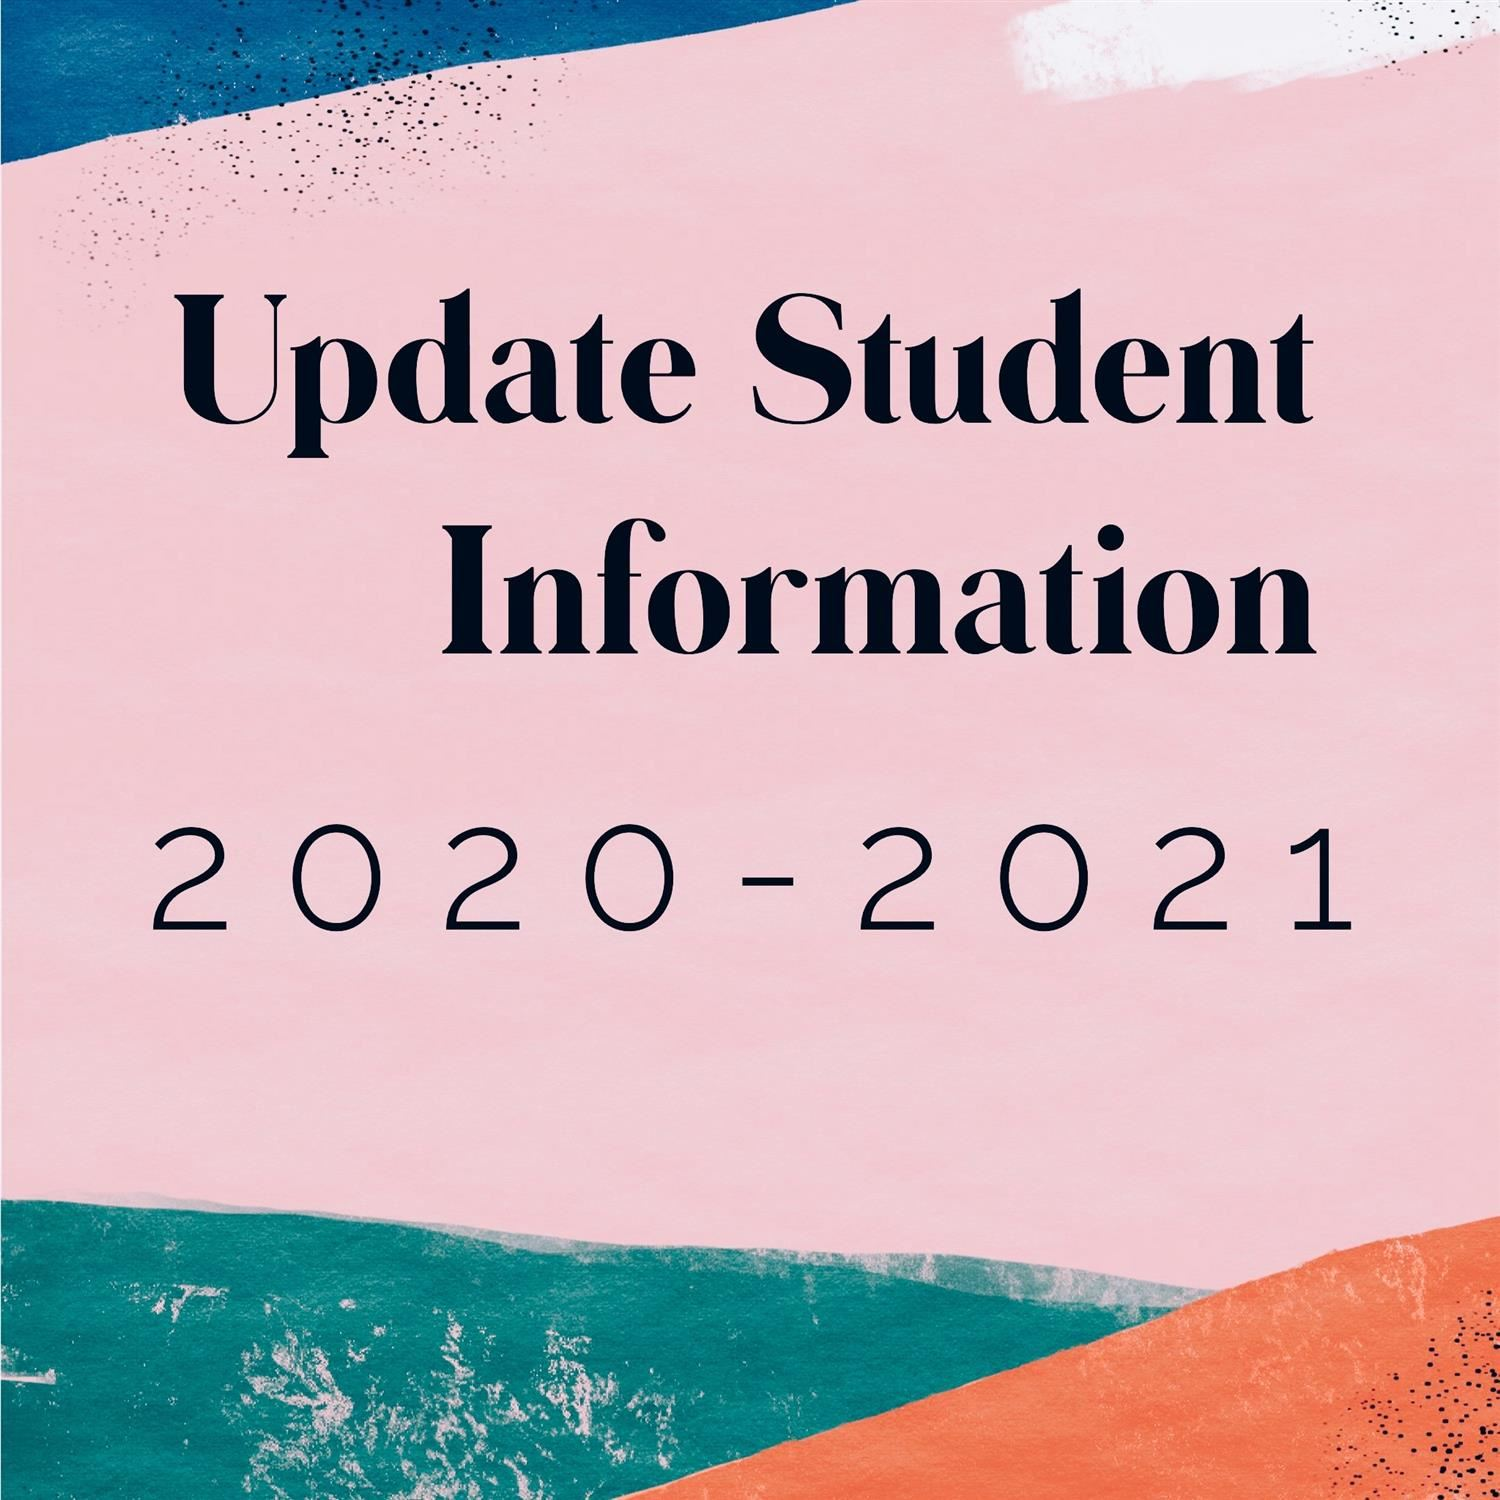 Annual Student Information Update